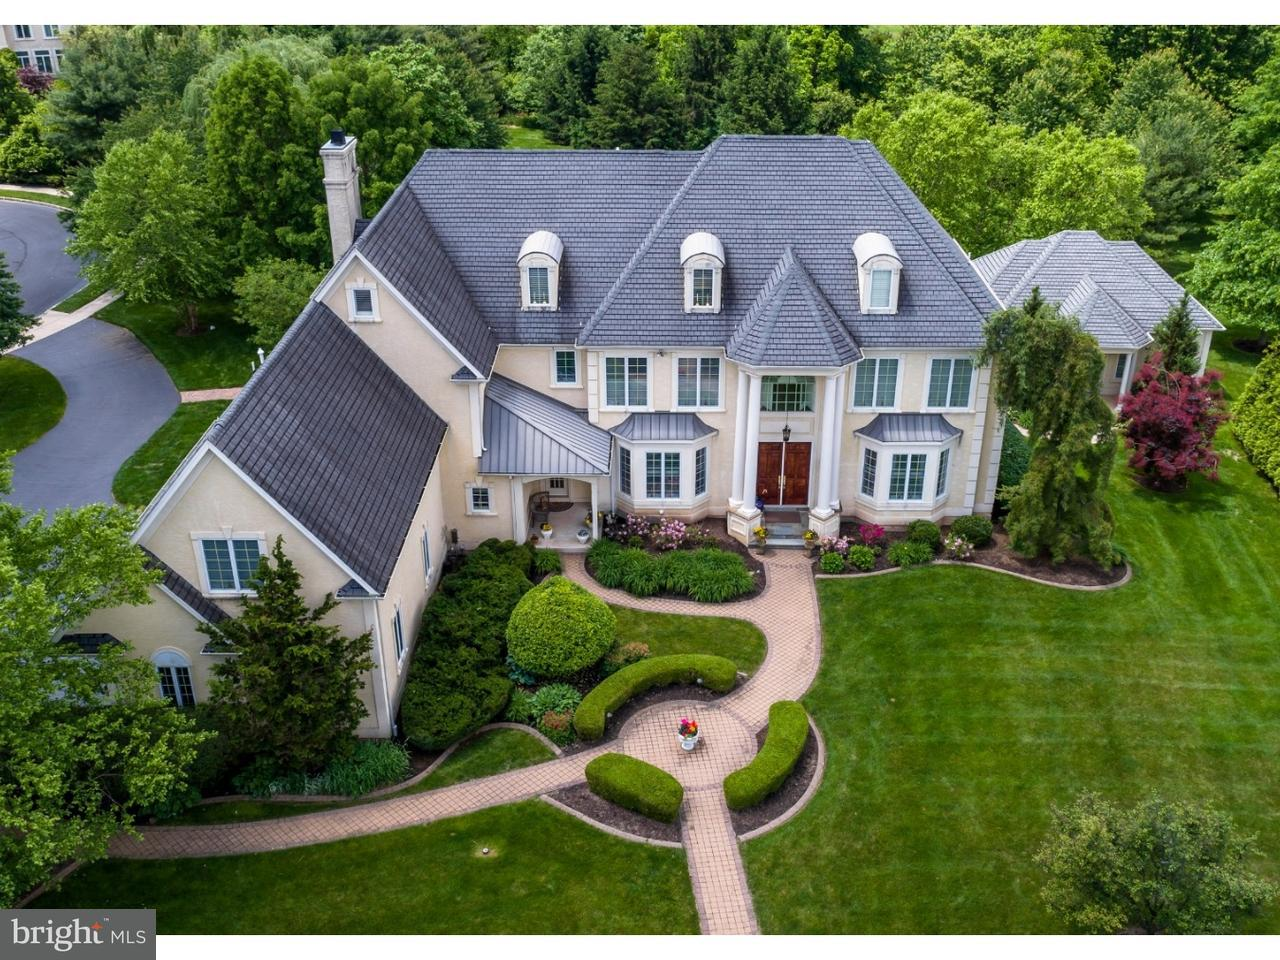 Single Family Home for Sale at 710 DAVENTRY WAY Ambler, Pennsylvania 19002 United States